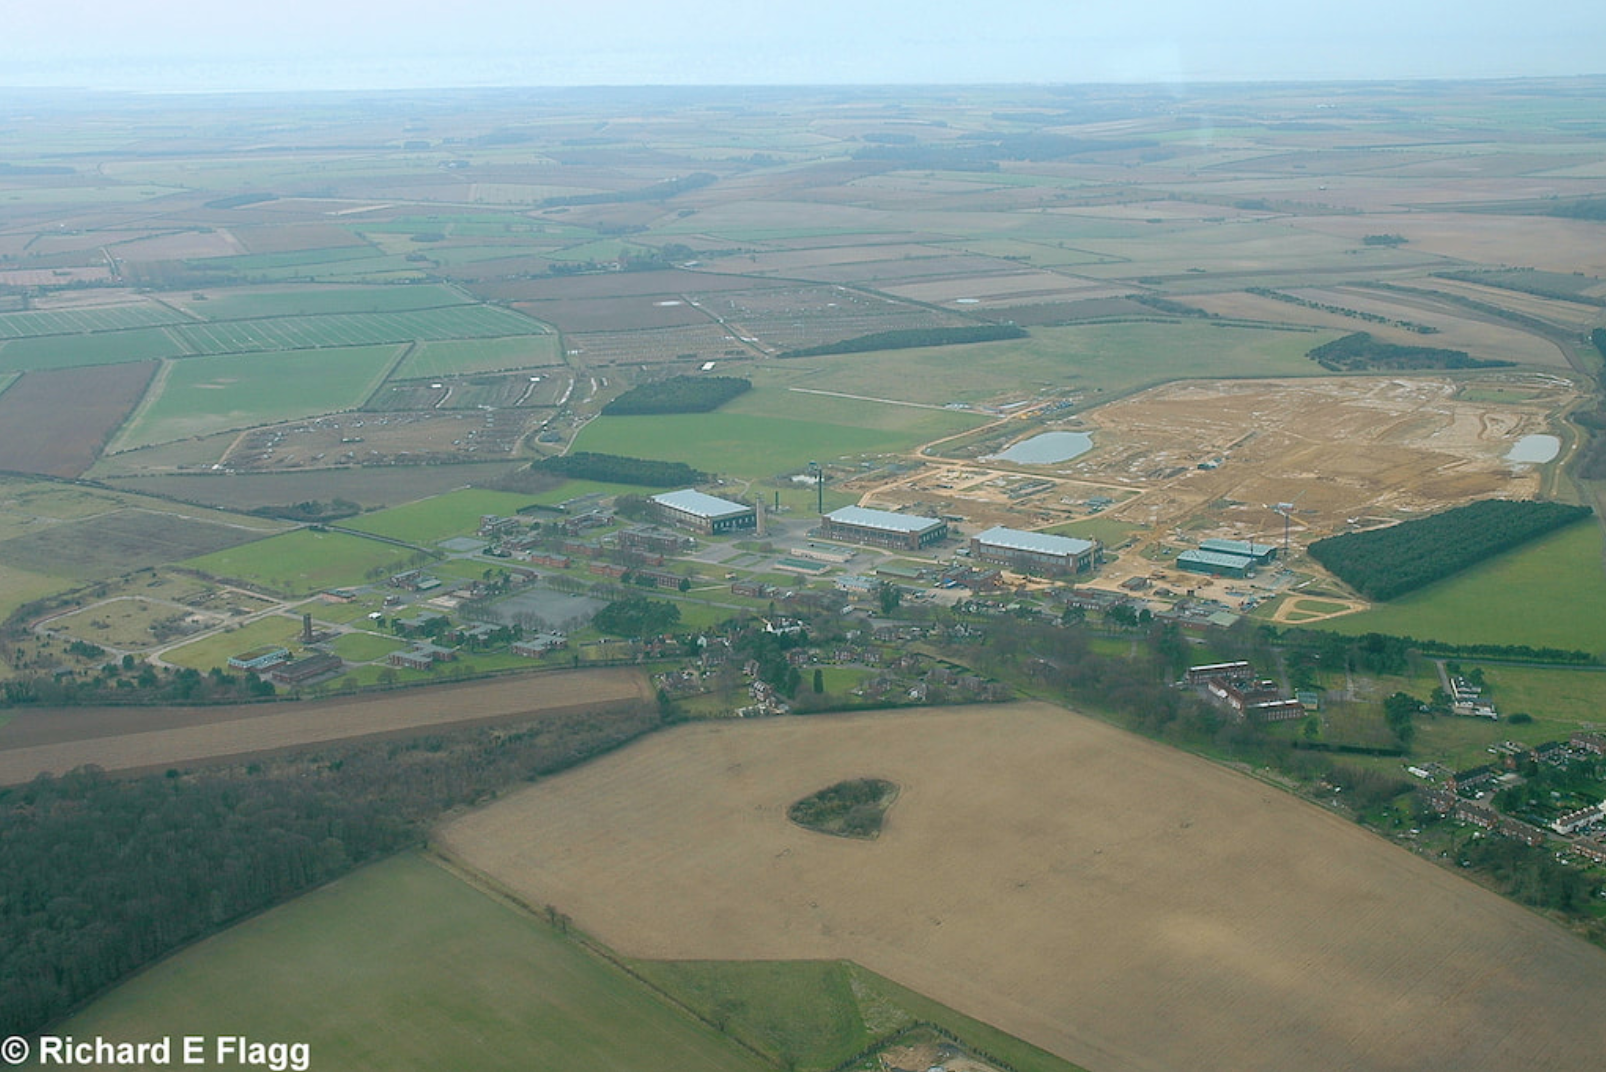 017Aerial View 2 of RAF Bircham Newton Airfield - 15 March 2009.png